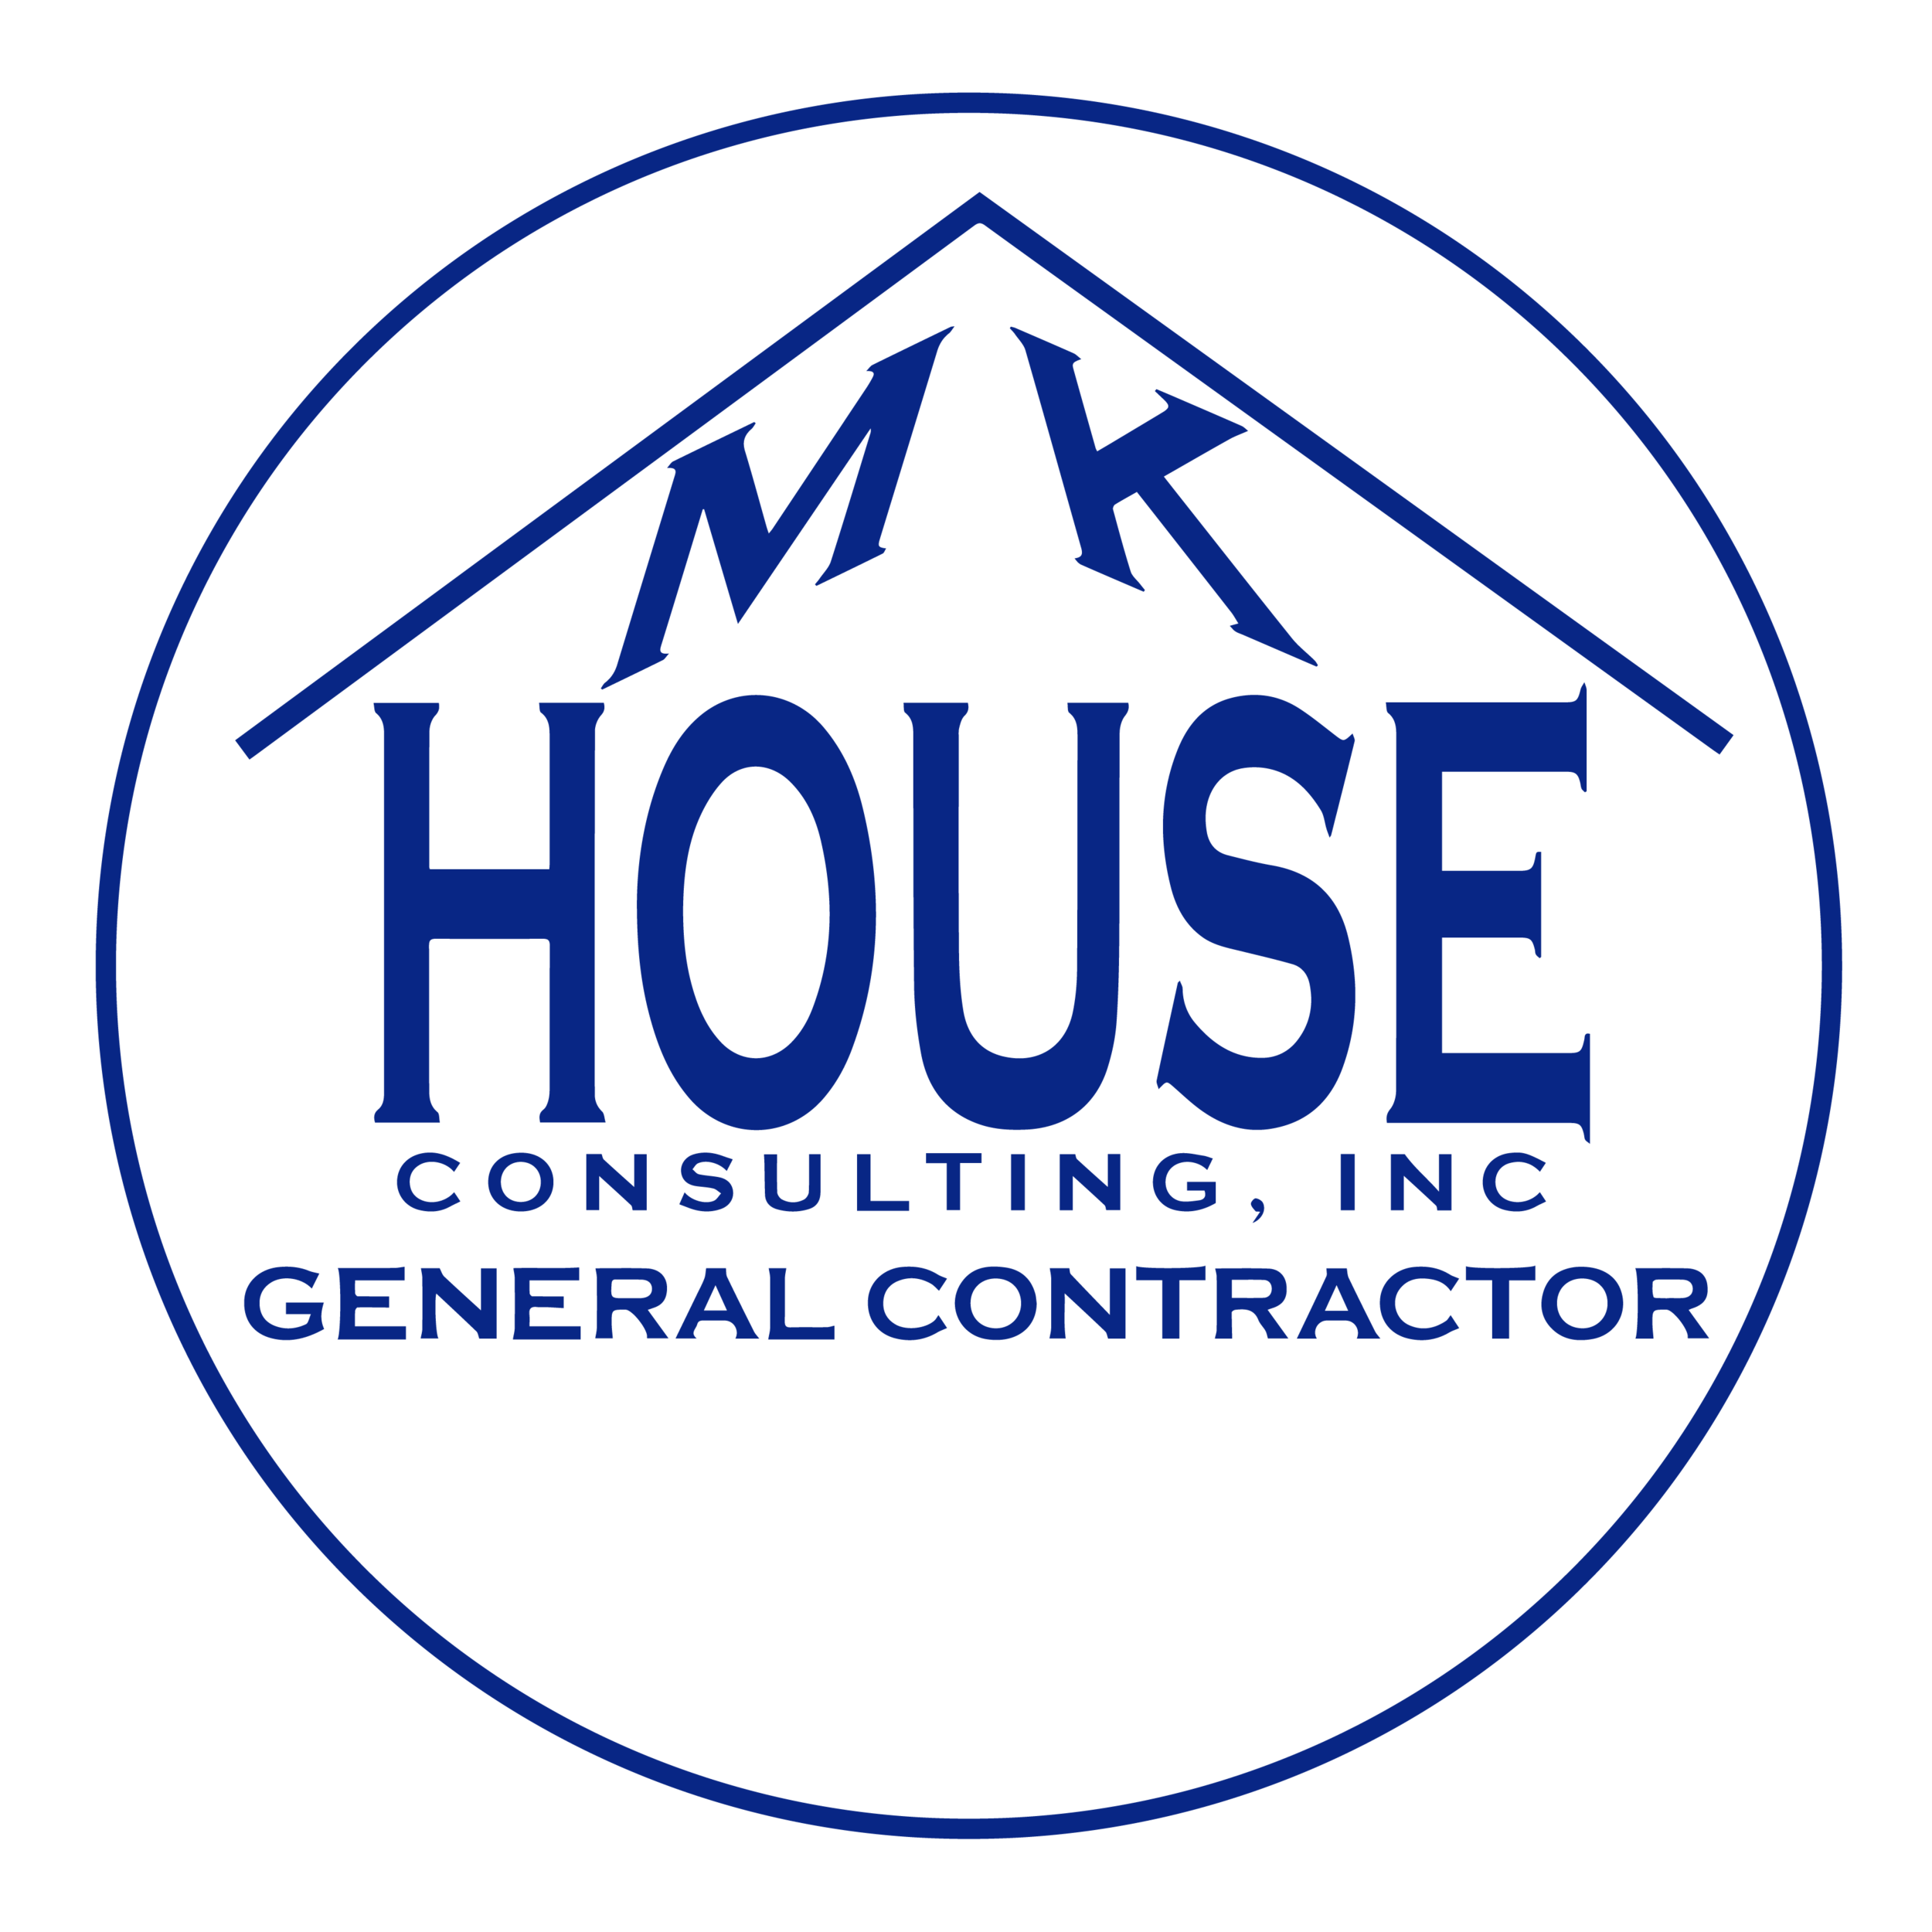 MK House-01.png